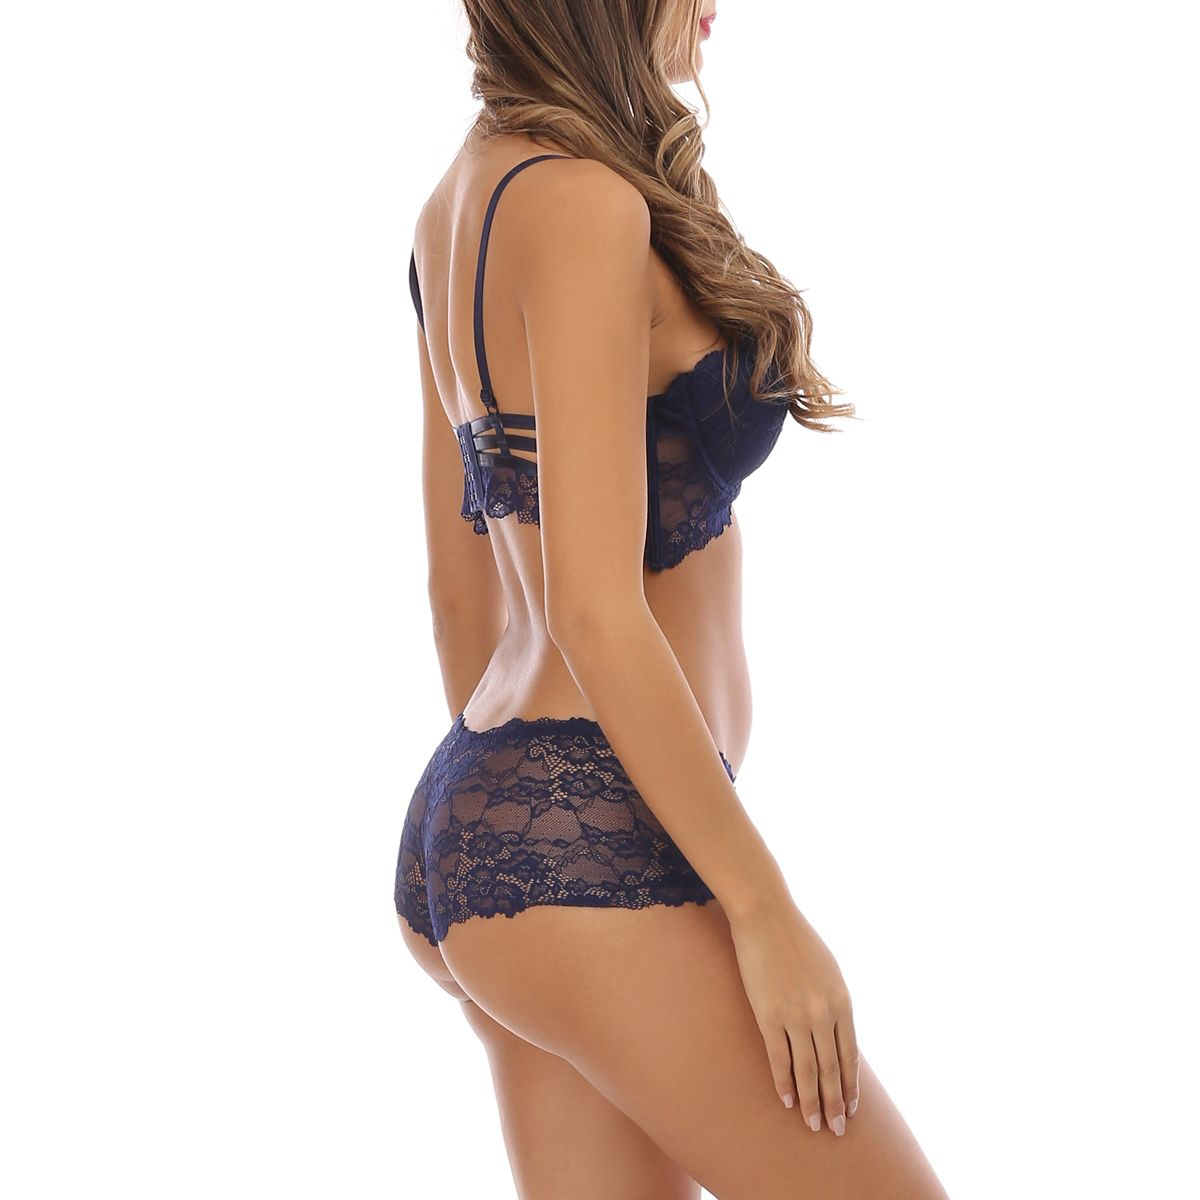 Ensemble lingerie bleu marine shorty à dentelle